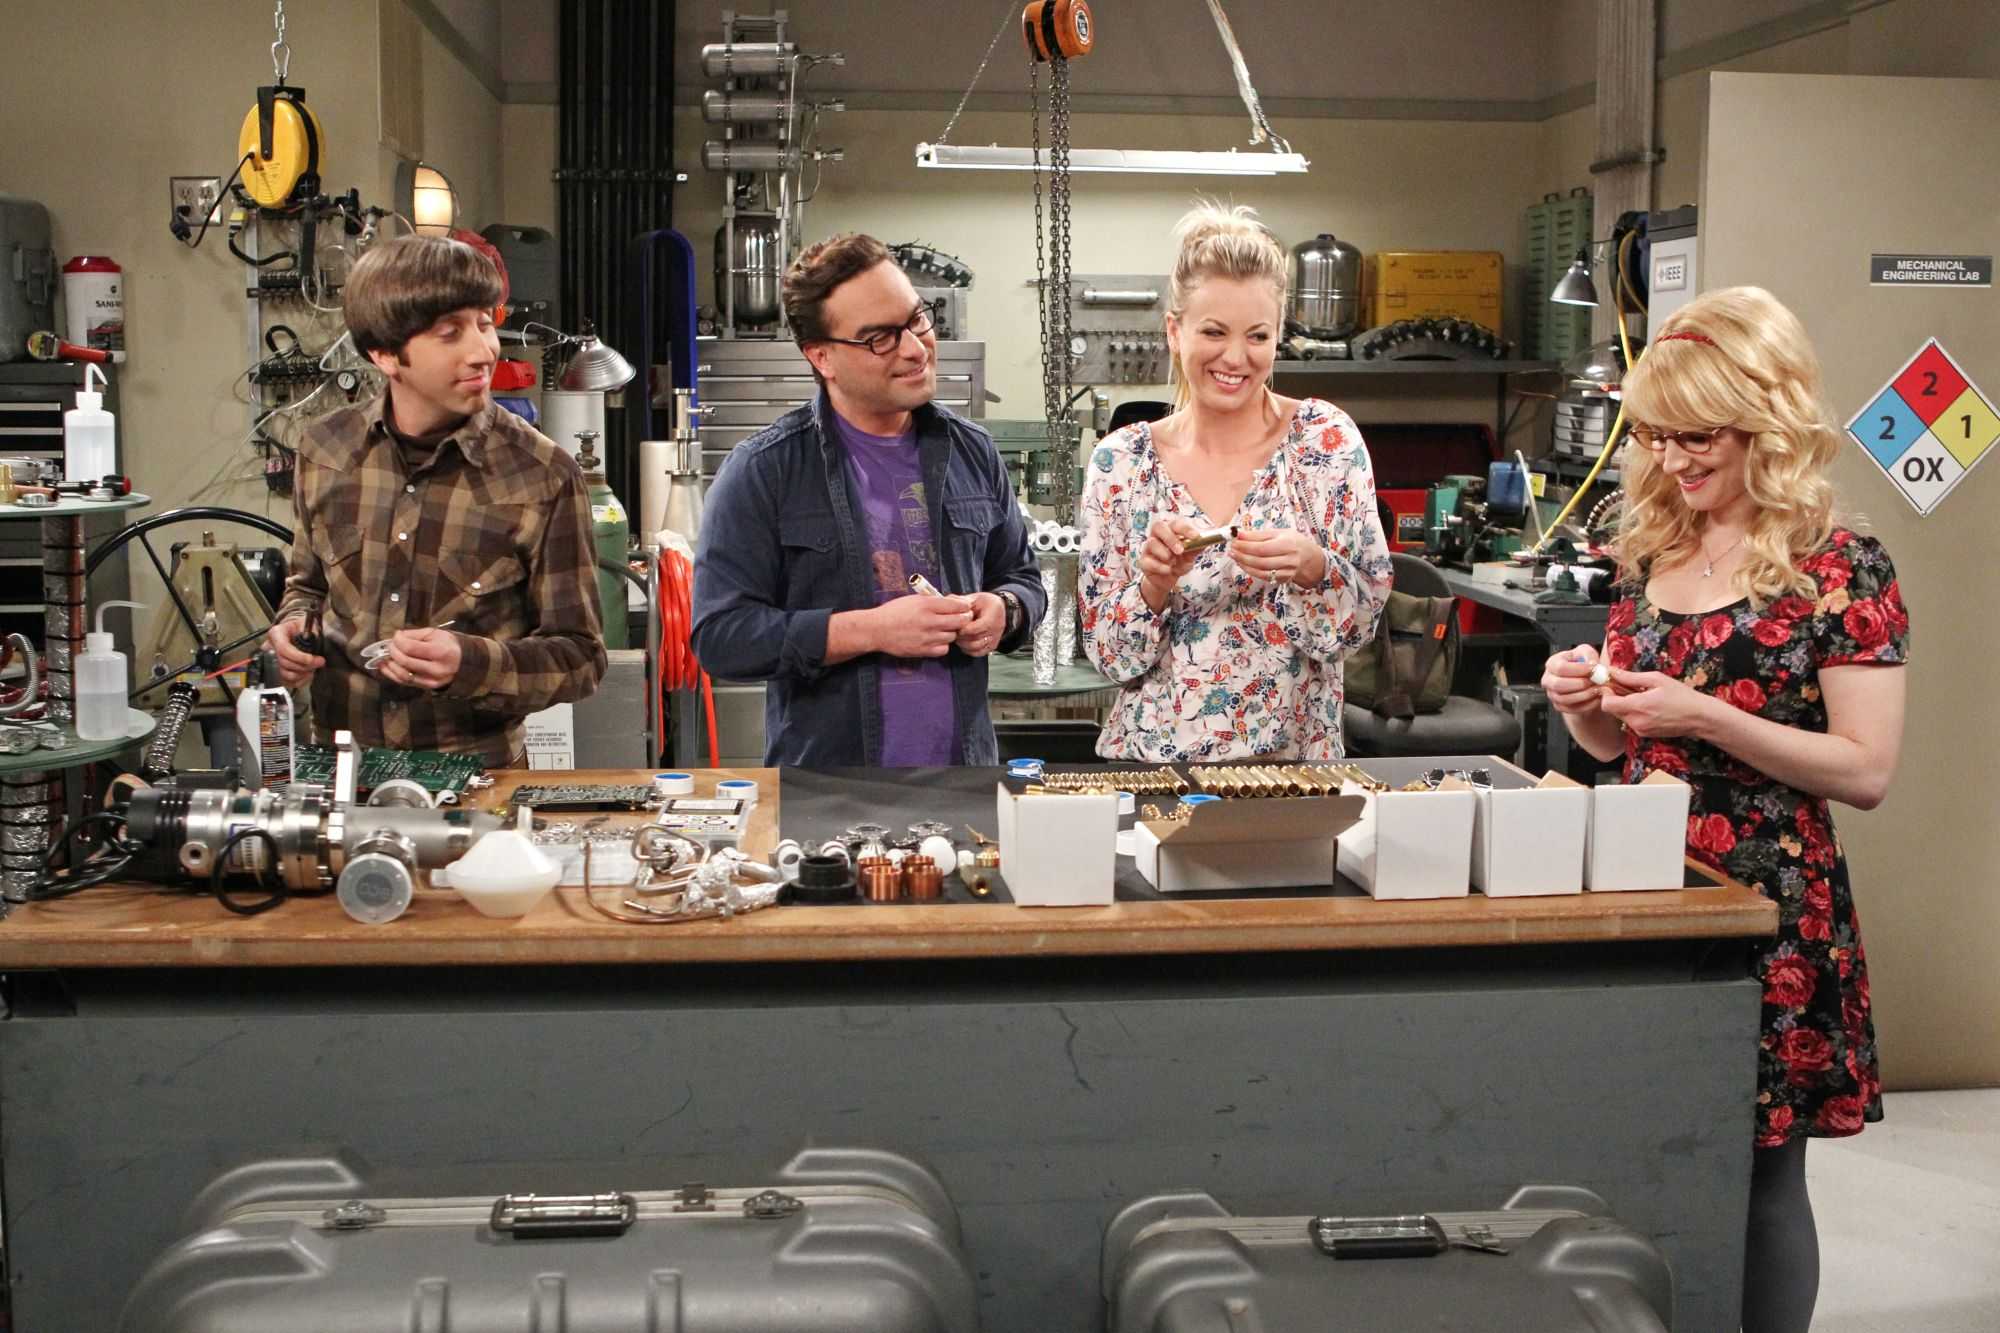 The Big Bang Theory Season 12 Episode 16 Release Date & Spoilers: Why is There No Episode This Week?